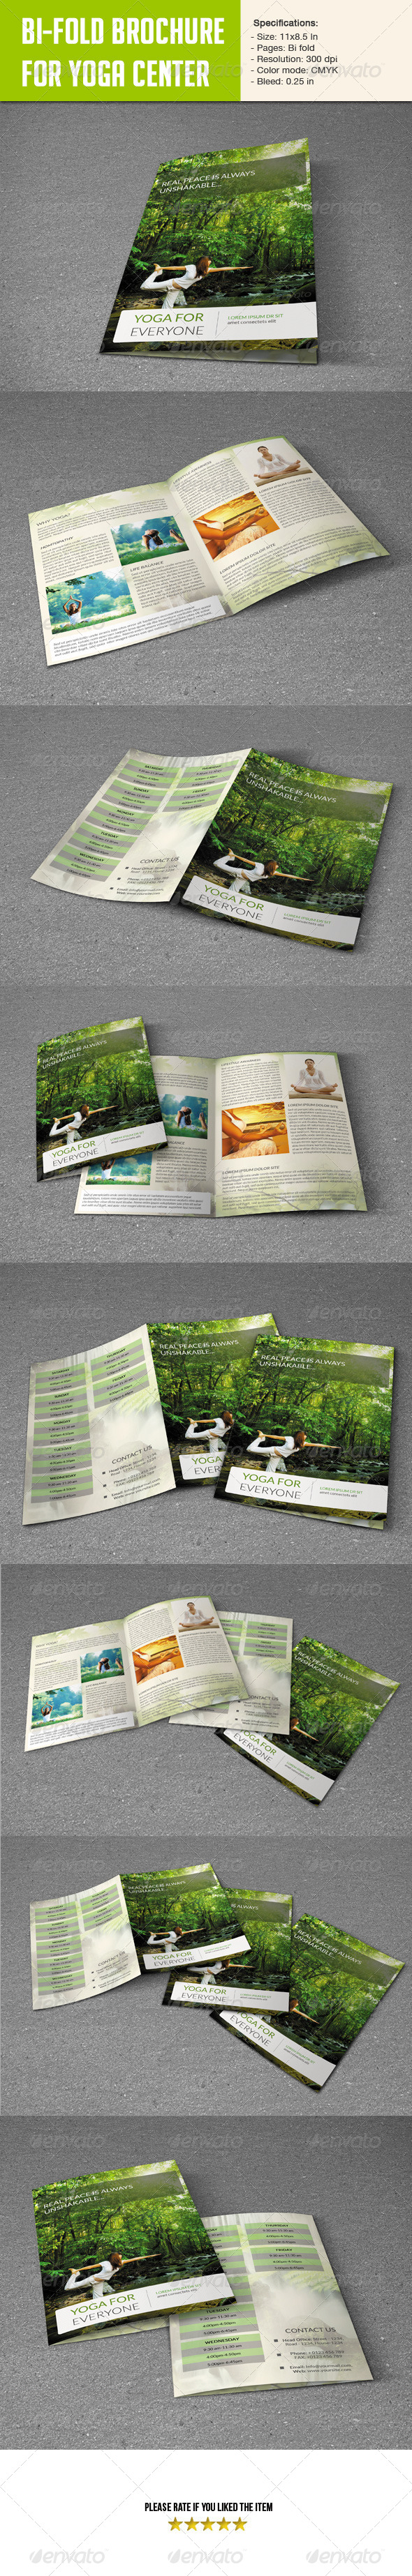 GraphicRiver Bifold Brochure for Yoga Center 5697602